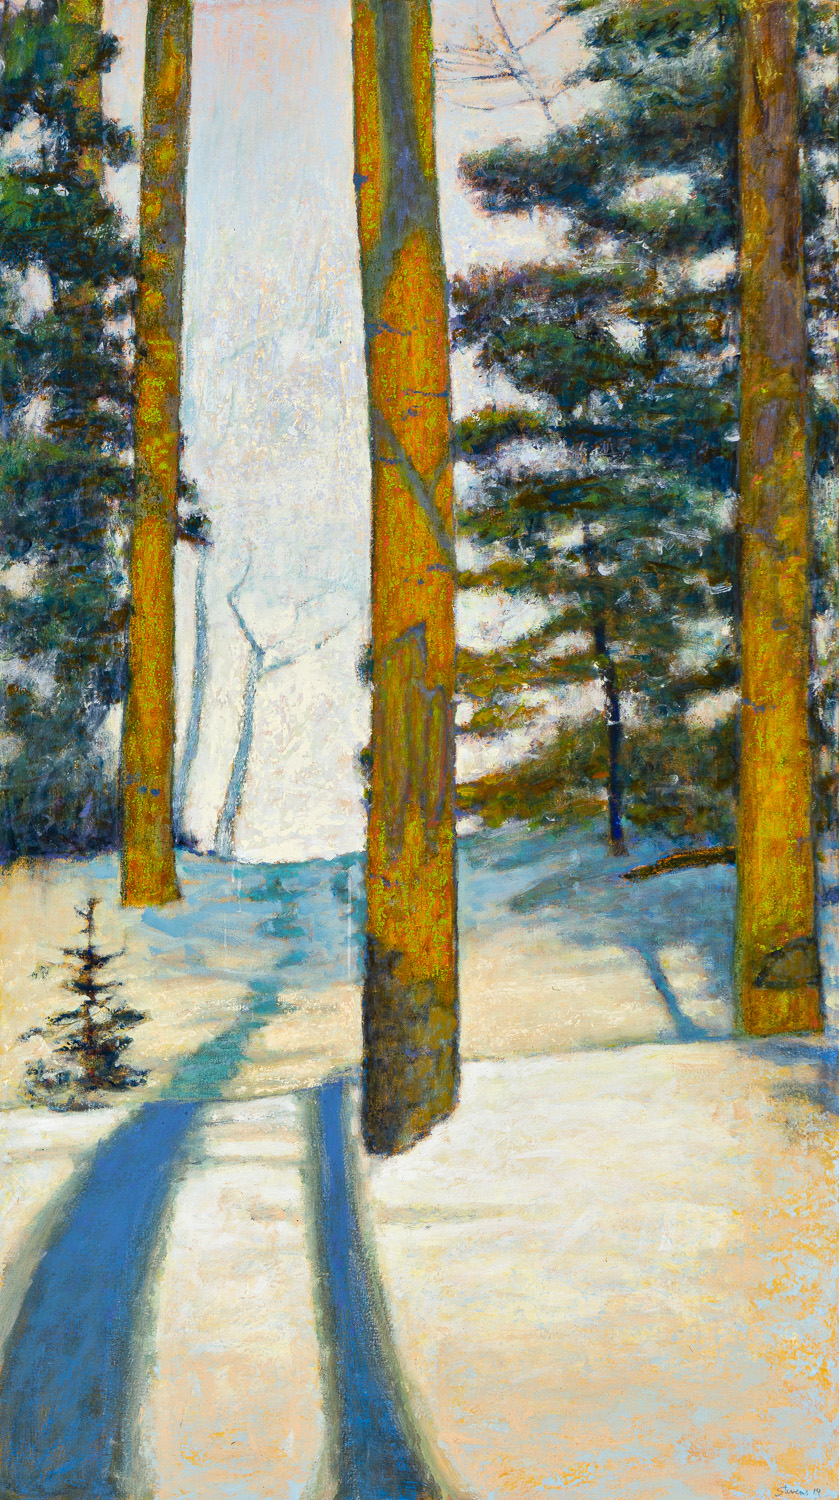 Winter Silence  | oil on canvas | 64 x 36"